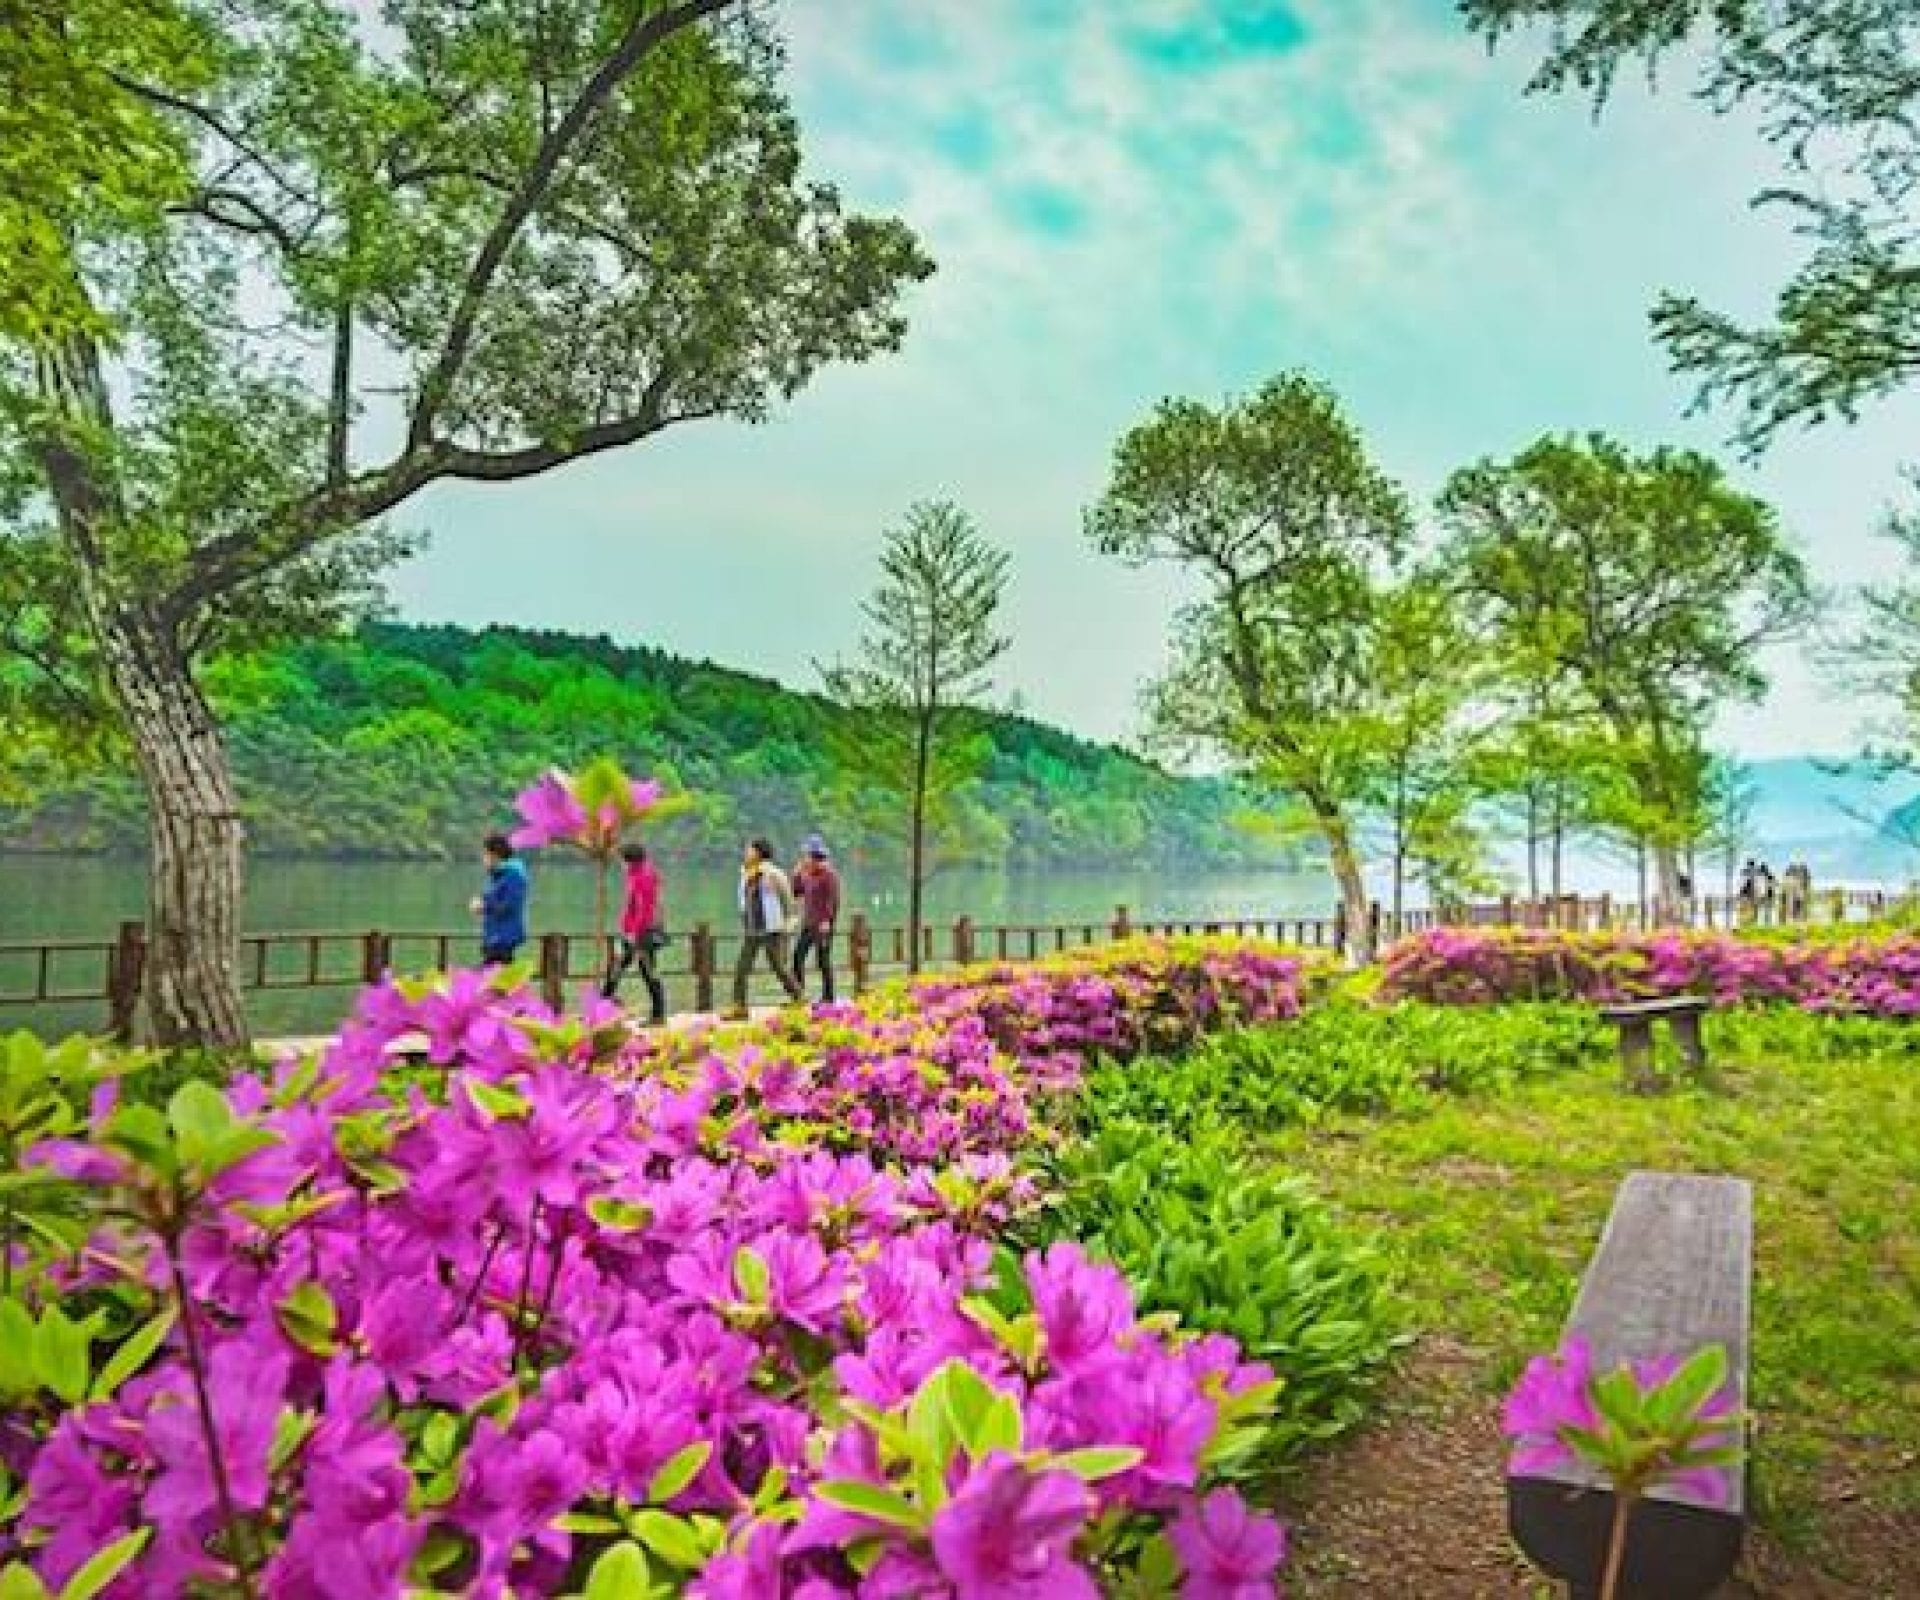 Nami Island | Chuncheon-si, Gangwon-do